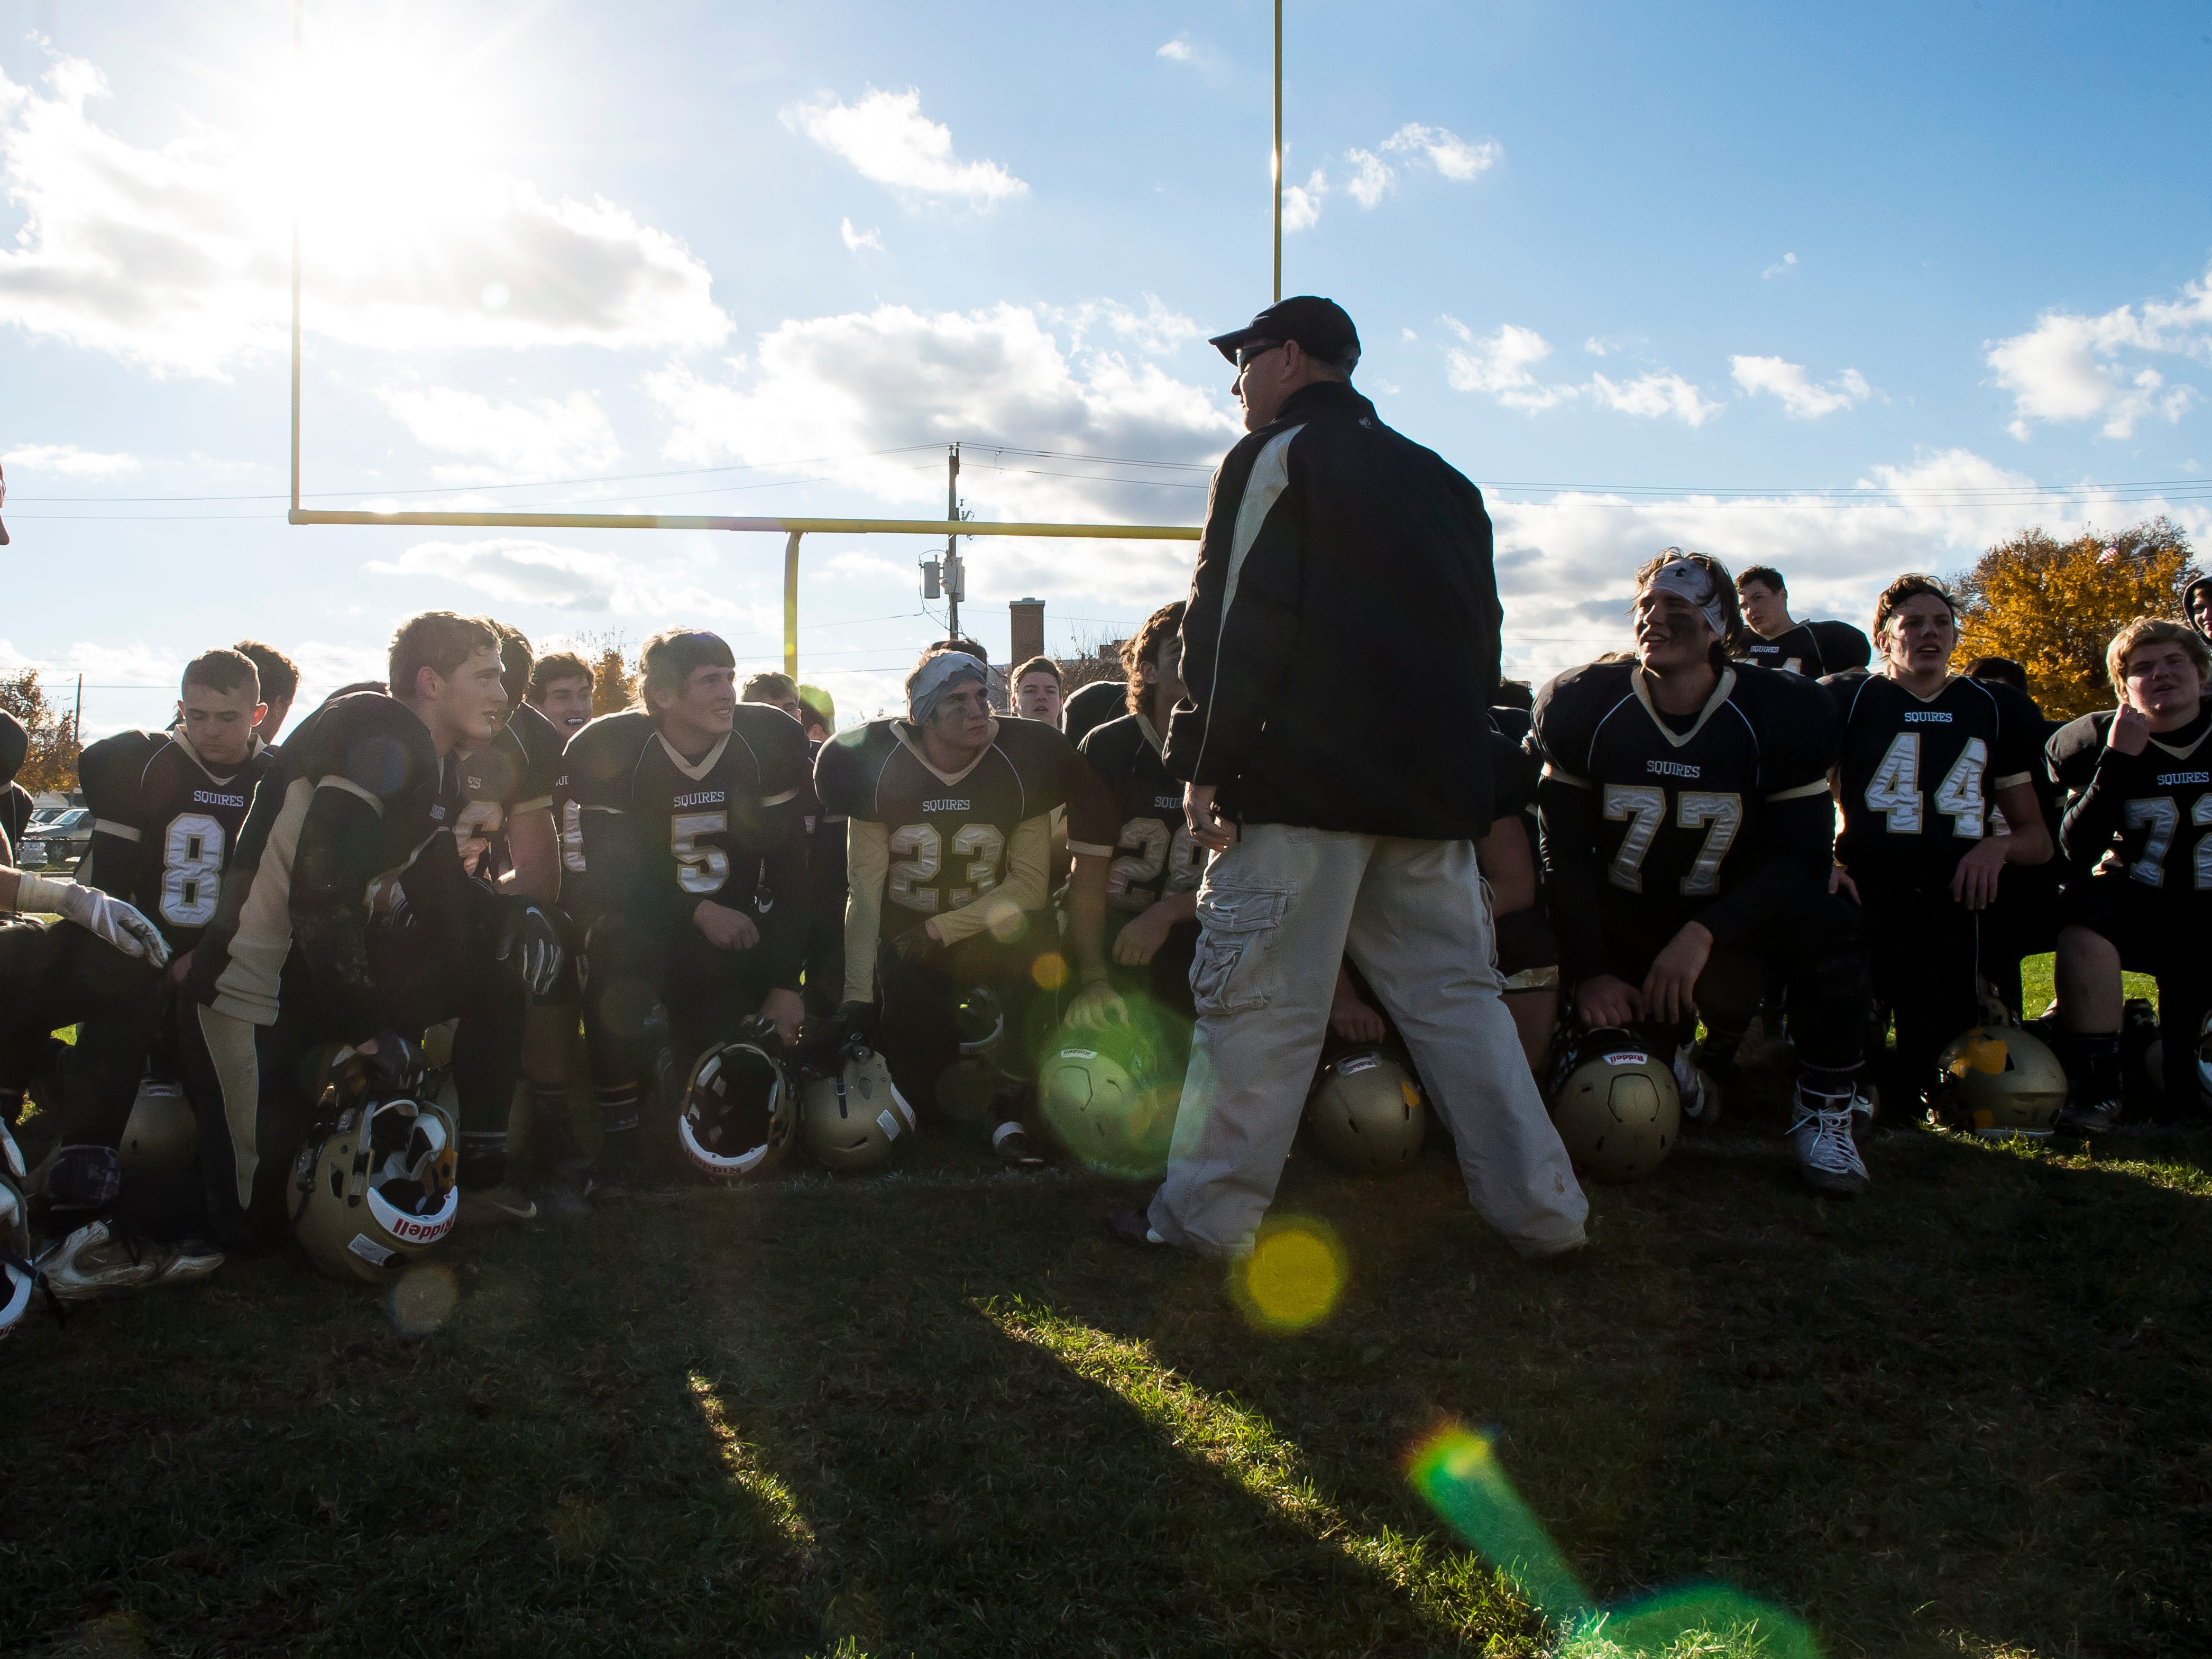 Delone Catholic players listen to one of their coaches following a 48-23 win over Upper Dauphin in a District III Class 2A semifinal game on Saturday, November 3, 2018. The Squires will play in the District title game against York Catholic on Friday.